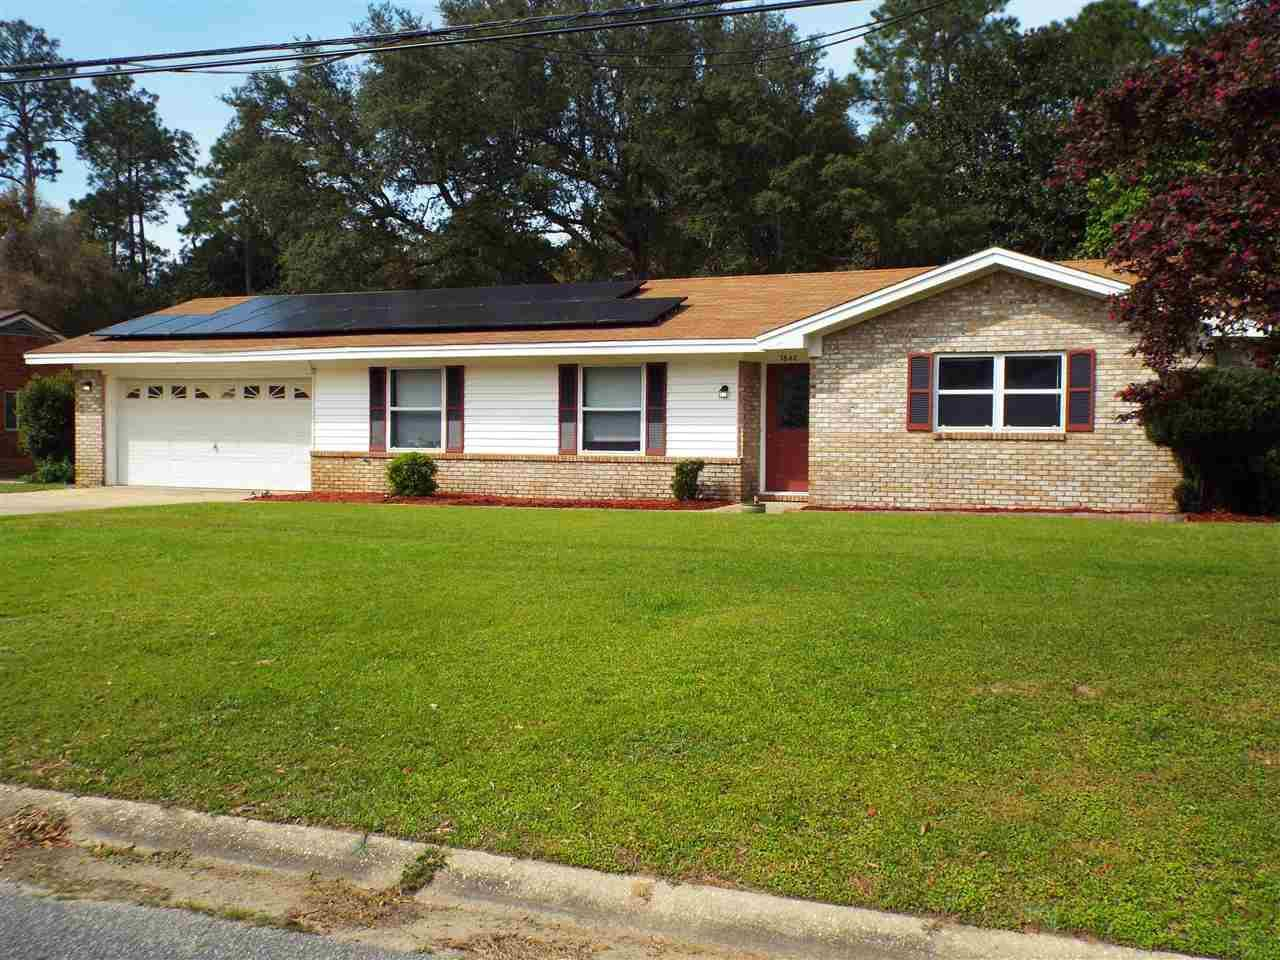 7640 CHESTERFIELD RD, Pensacola, Florida